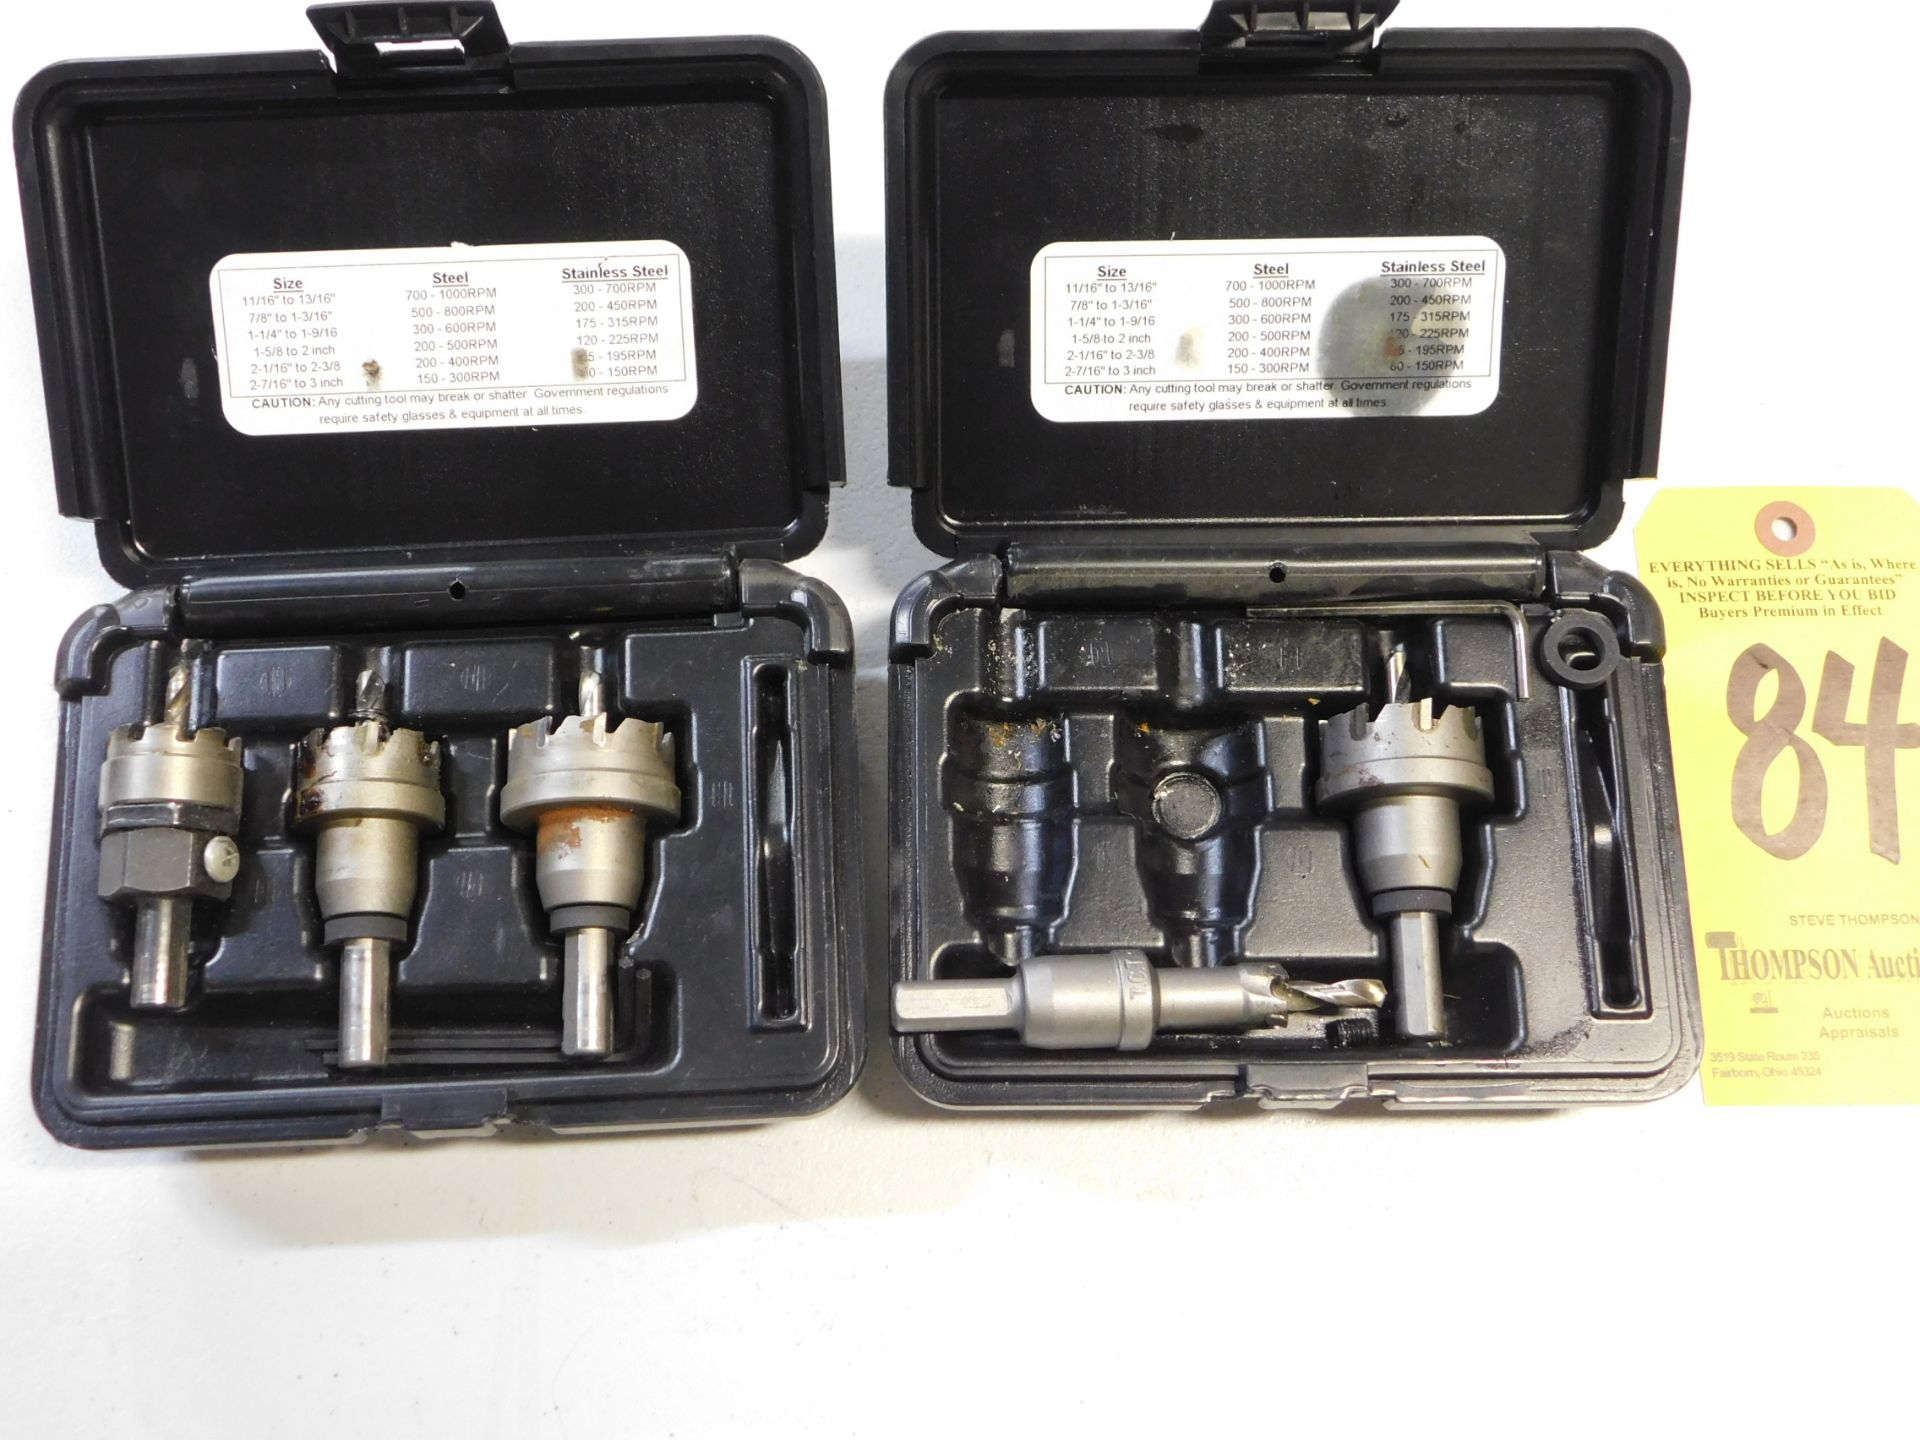 Lot 84 - Fastenal Carbide Tipped Hole Cutters, Lot Location 3204 Olympia Dr. A, Lafayette, IN 47909